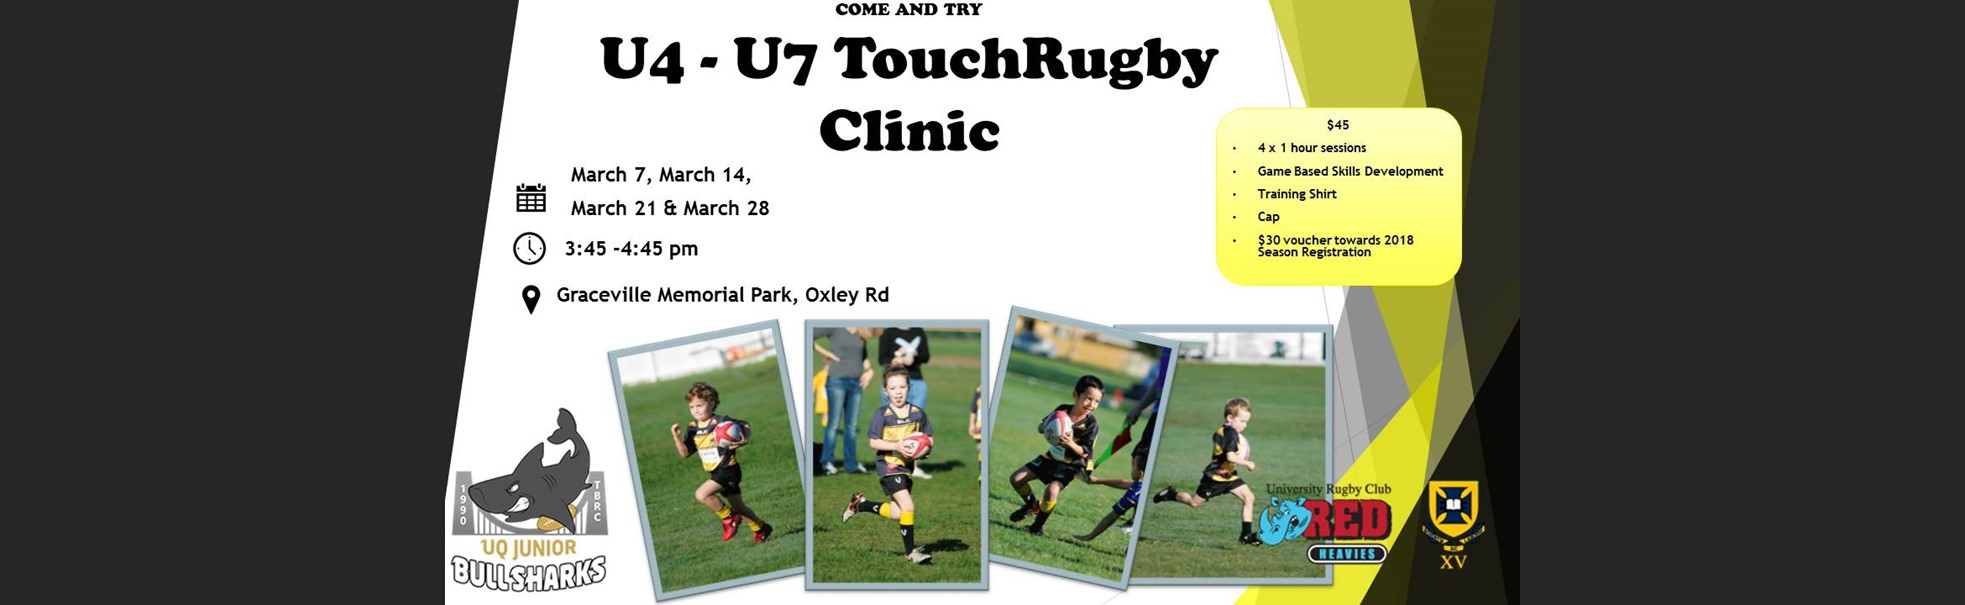 TB Try Touch Rugby Web Banner